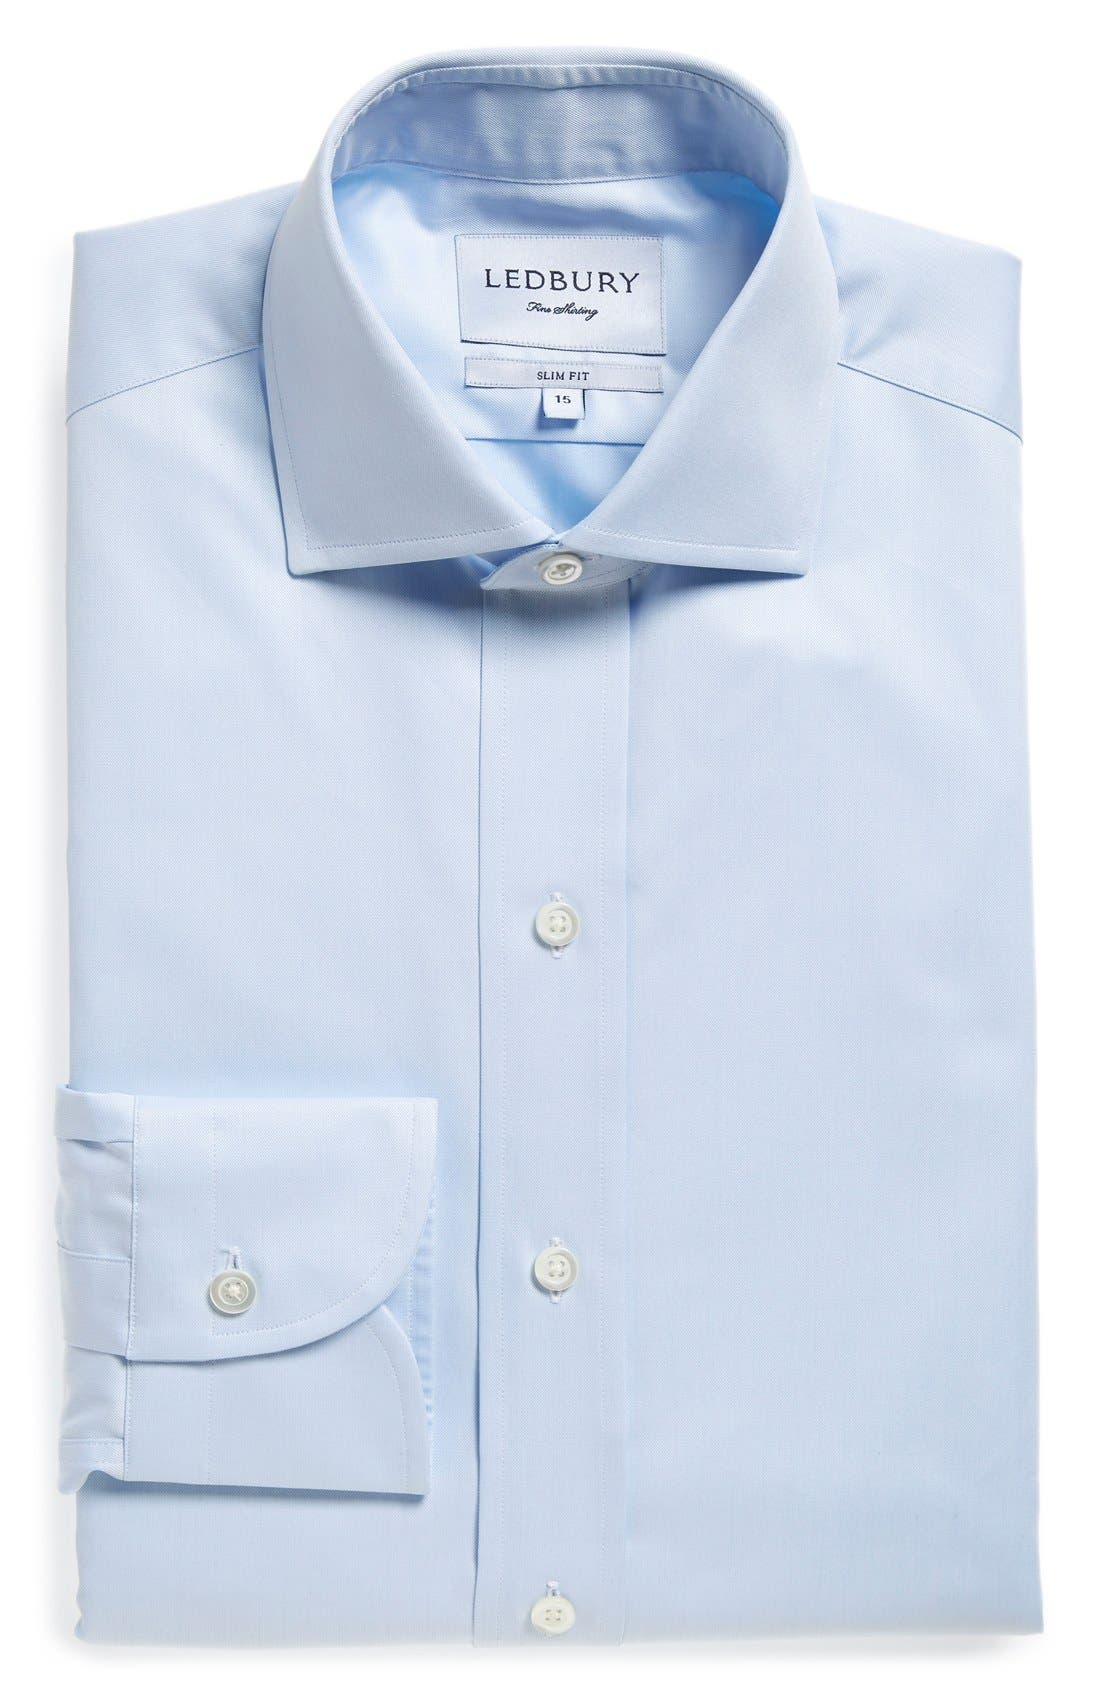 Ledbury Slim Fit Dress Shirt